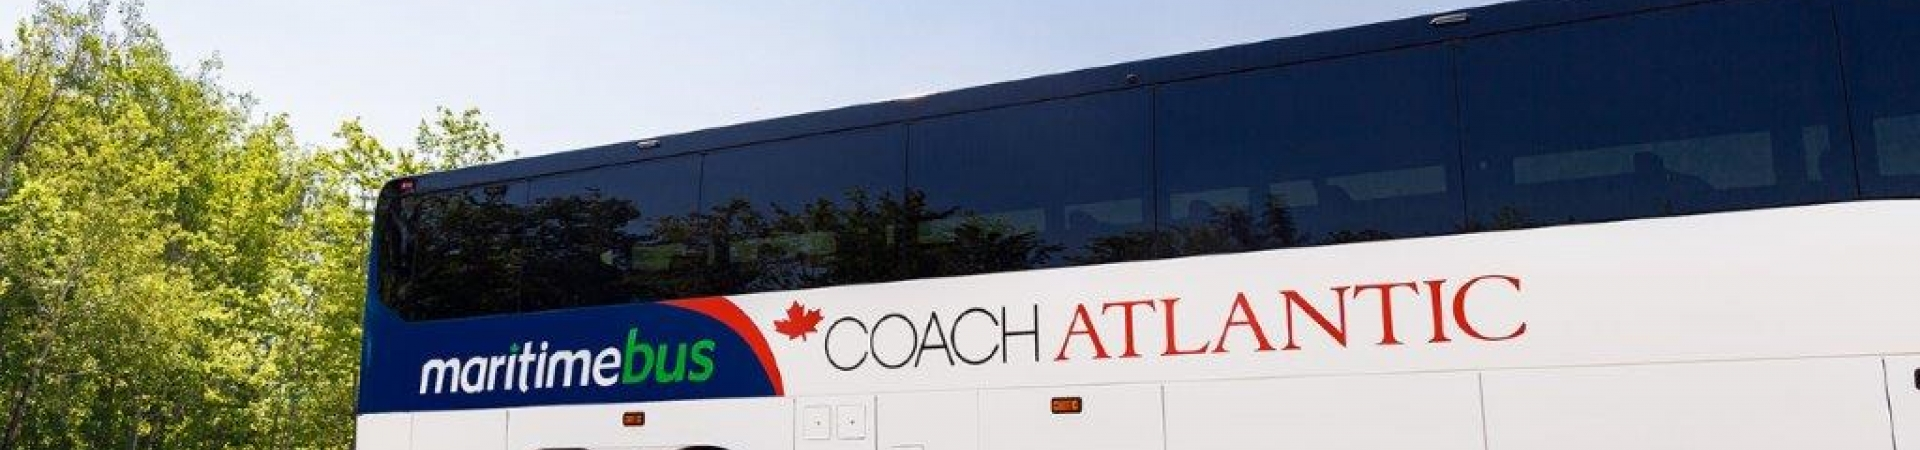 Coach Atlantic Bus on sunny day